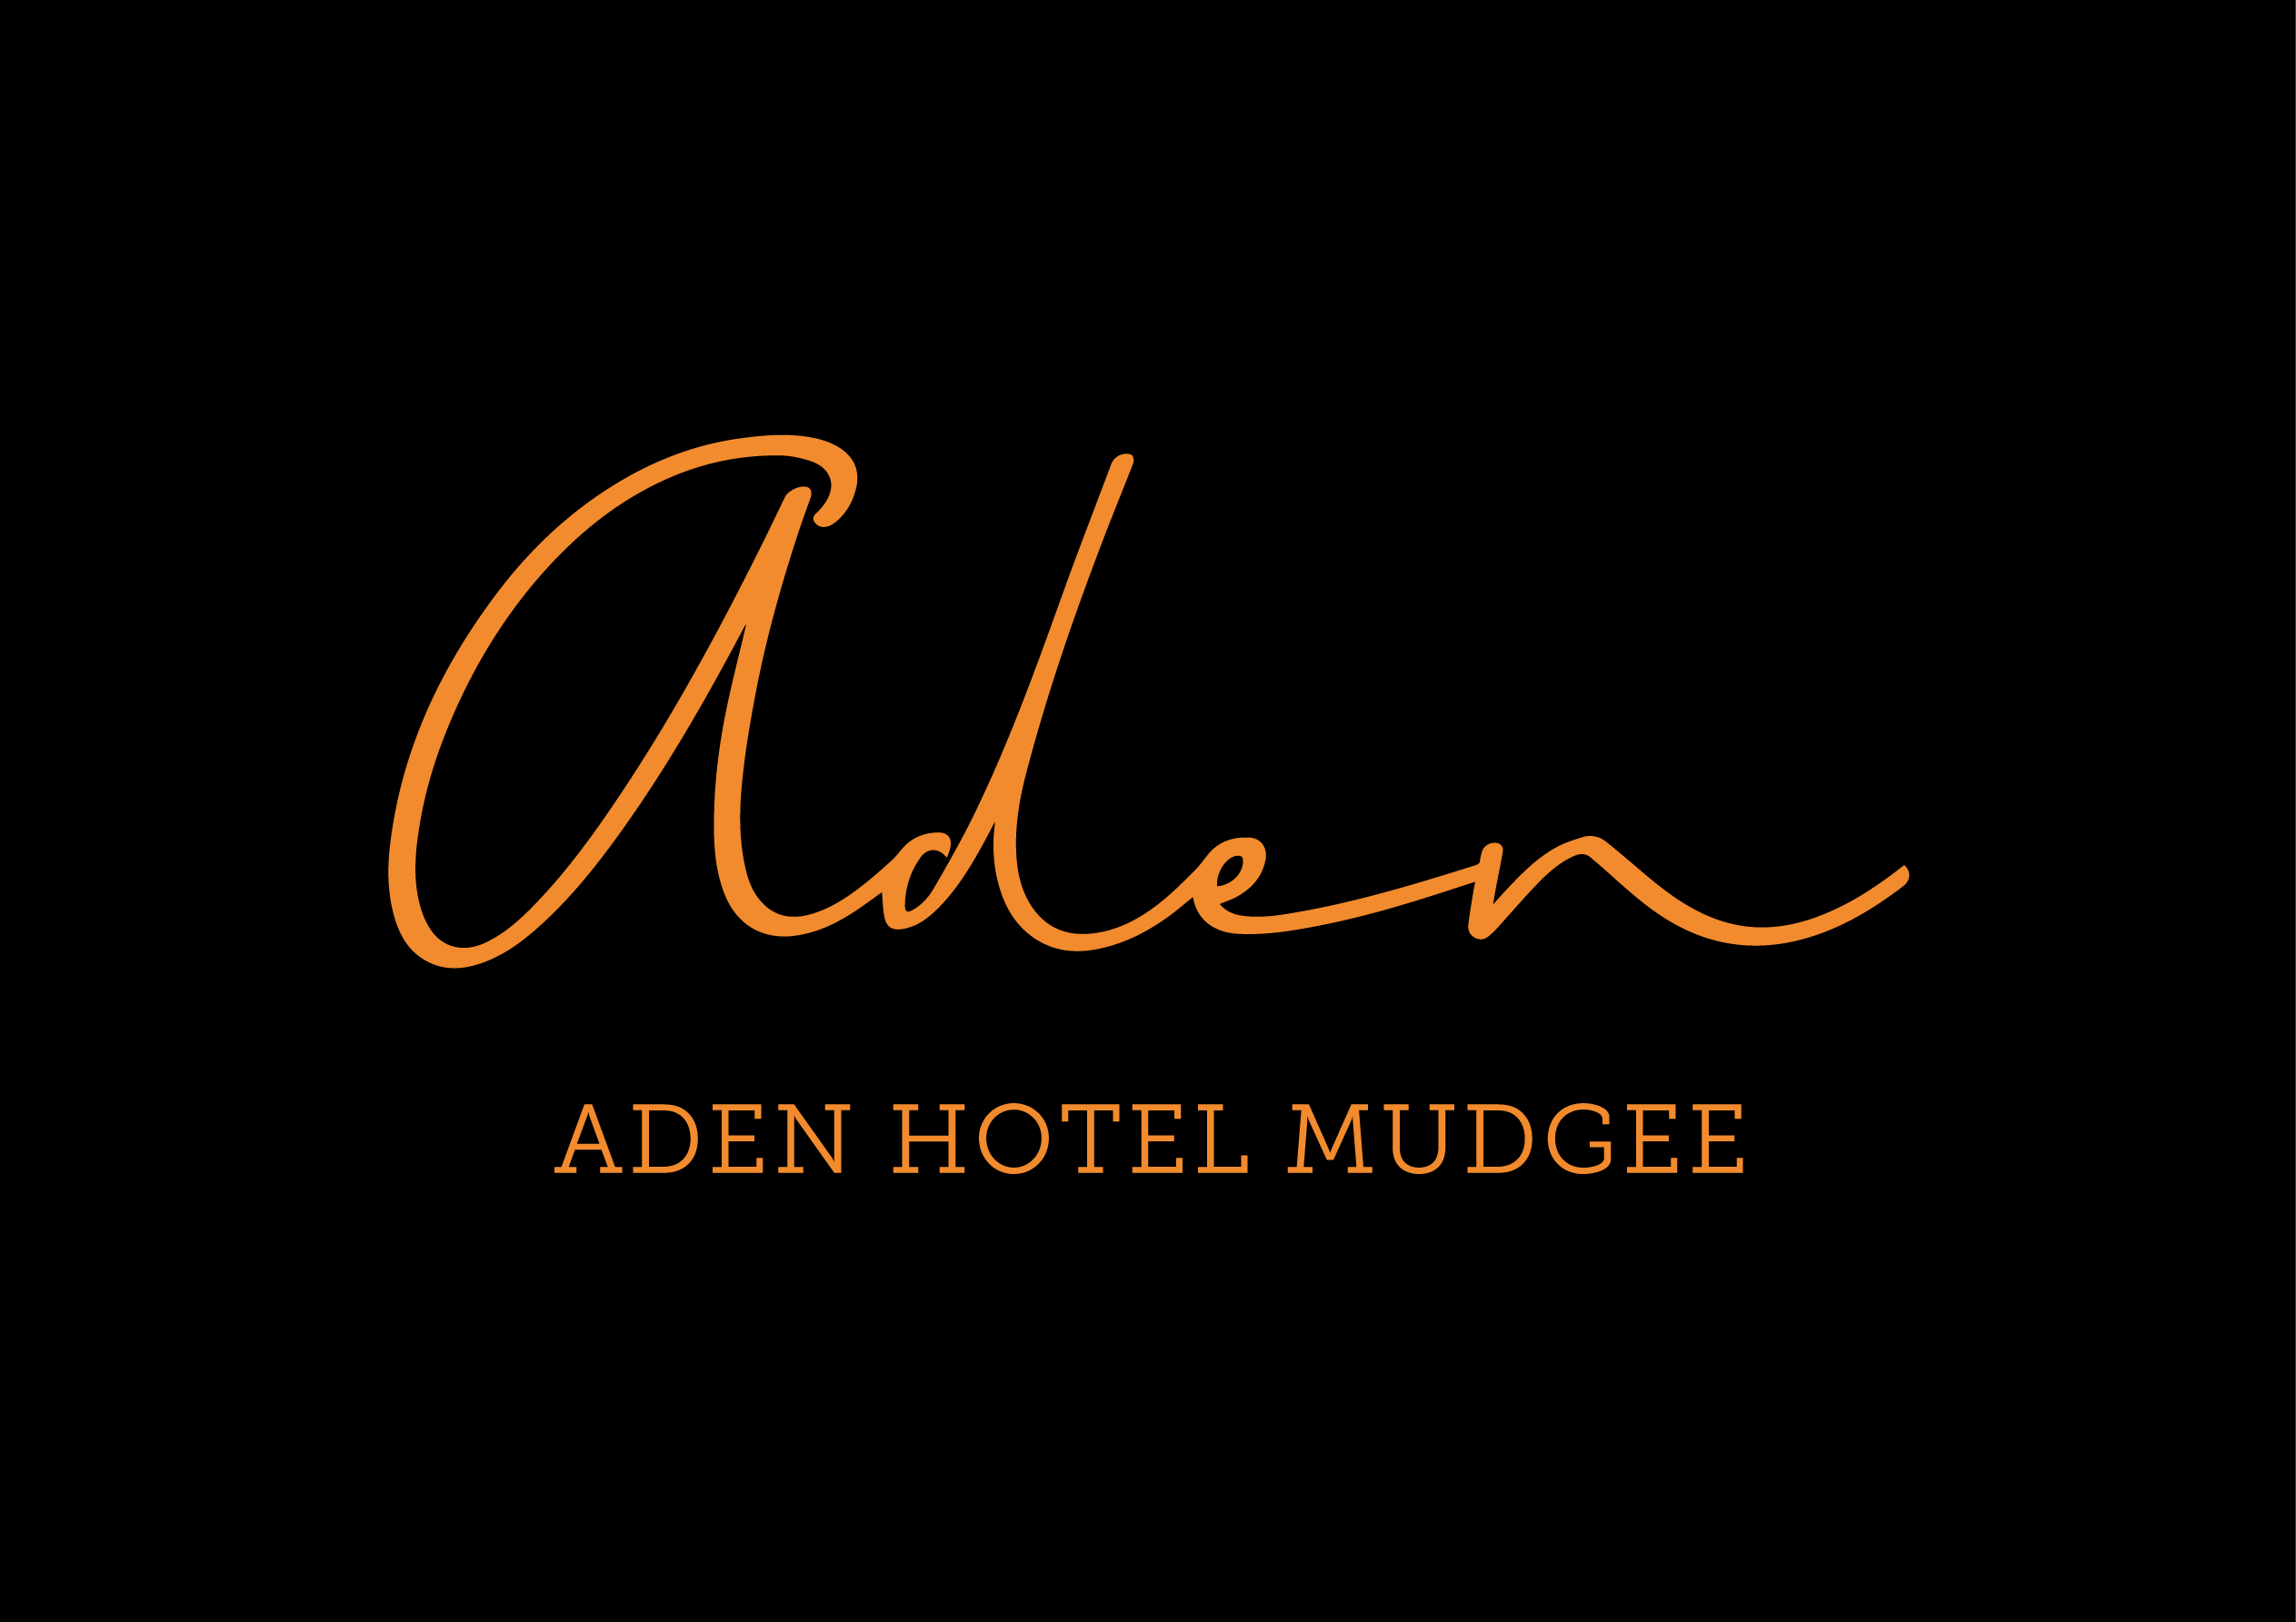 Comfort Inn Aden Hotel Mudgee - Accommodation Port Macquarie